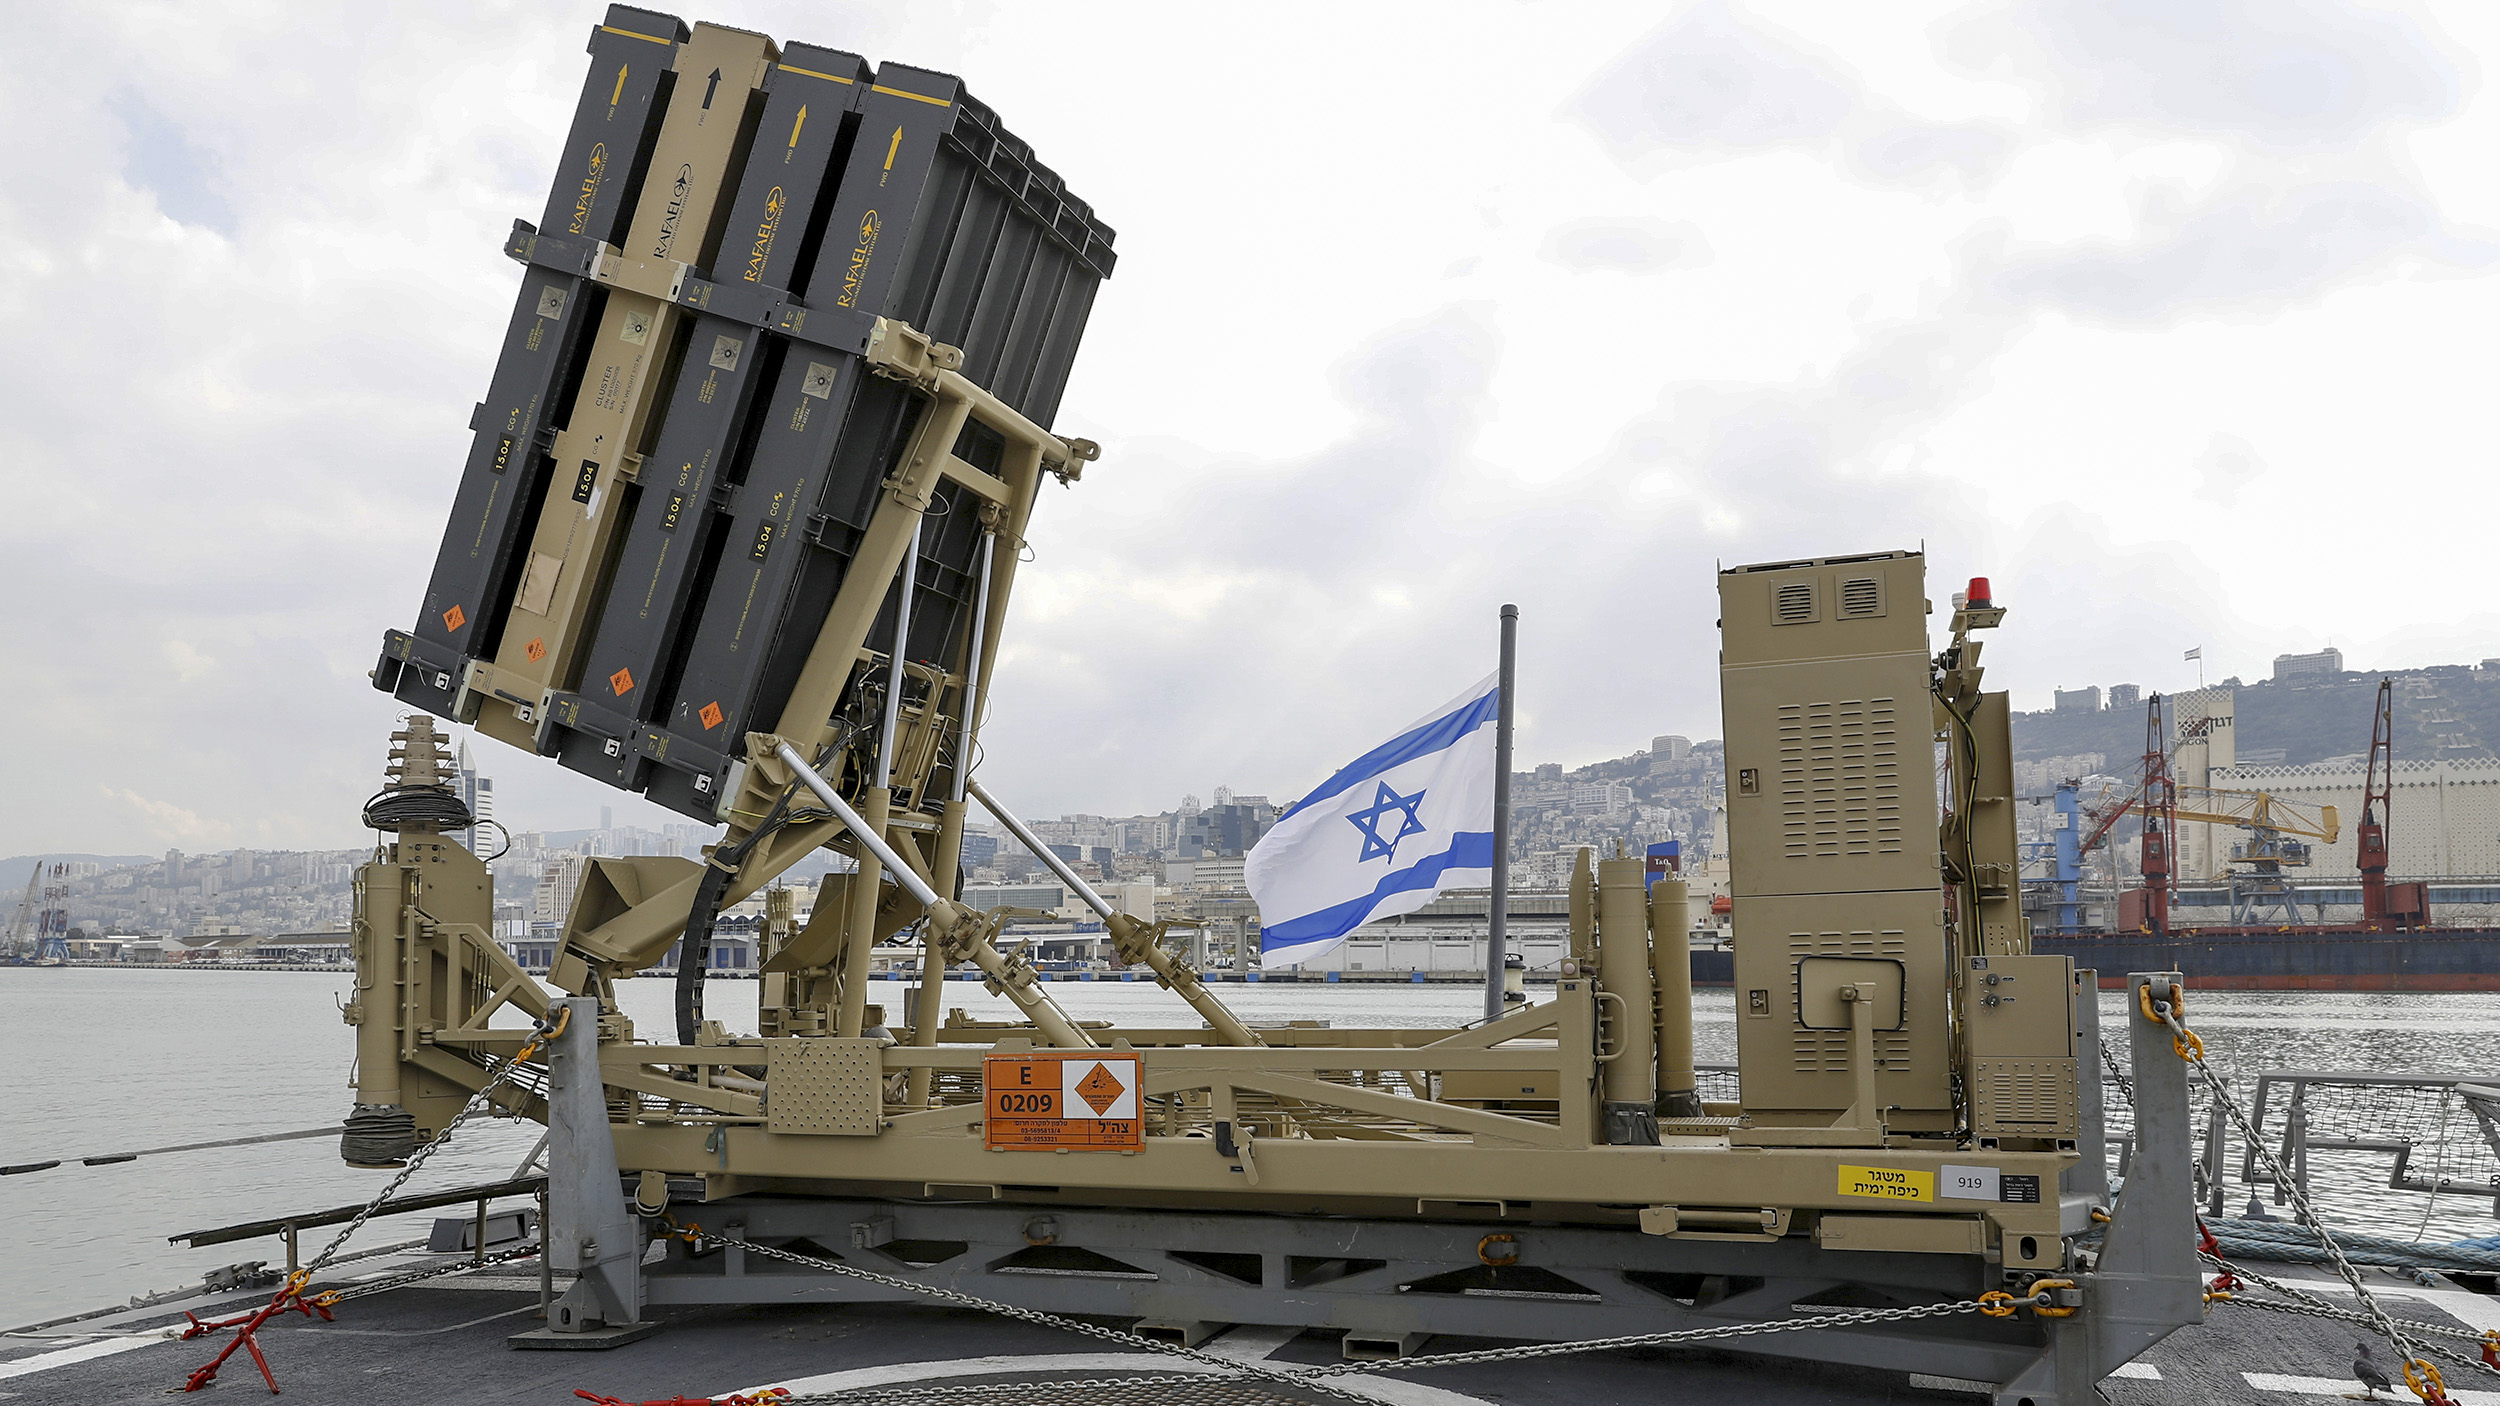 A photo taken on February 12, 2019, shows an Israeli naval Iron Dome defence system, designed to intercept and destroy incoming short-range rockets and artillery shells, installed on a Sa'ar 5 Lahav Class corvette of the Israeli Navy fleet, in the northern port of Haifa. (JACK GUEZ/AFP/Getty Images)